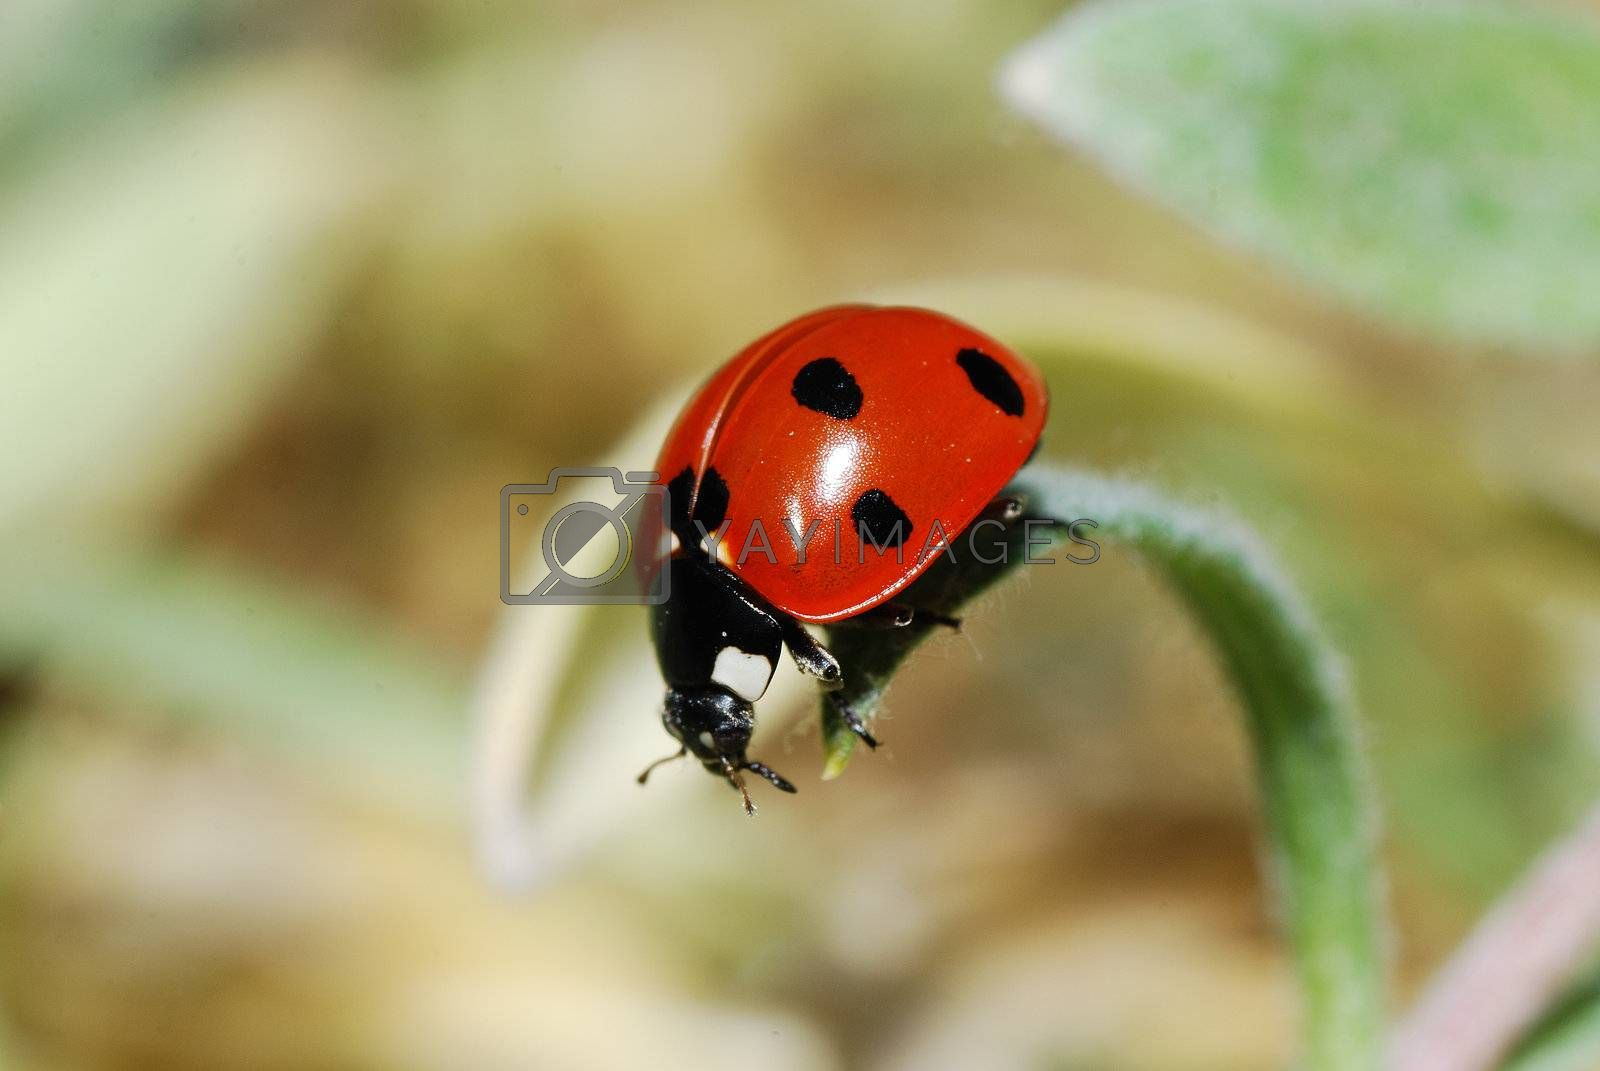 small red black ladybug on a leaf in the spring before the descent